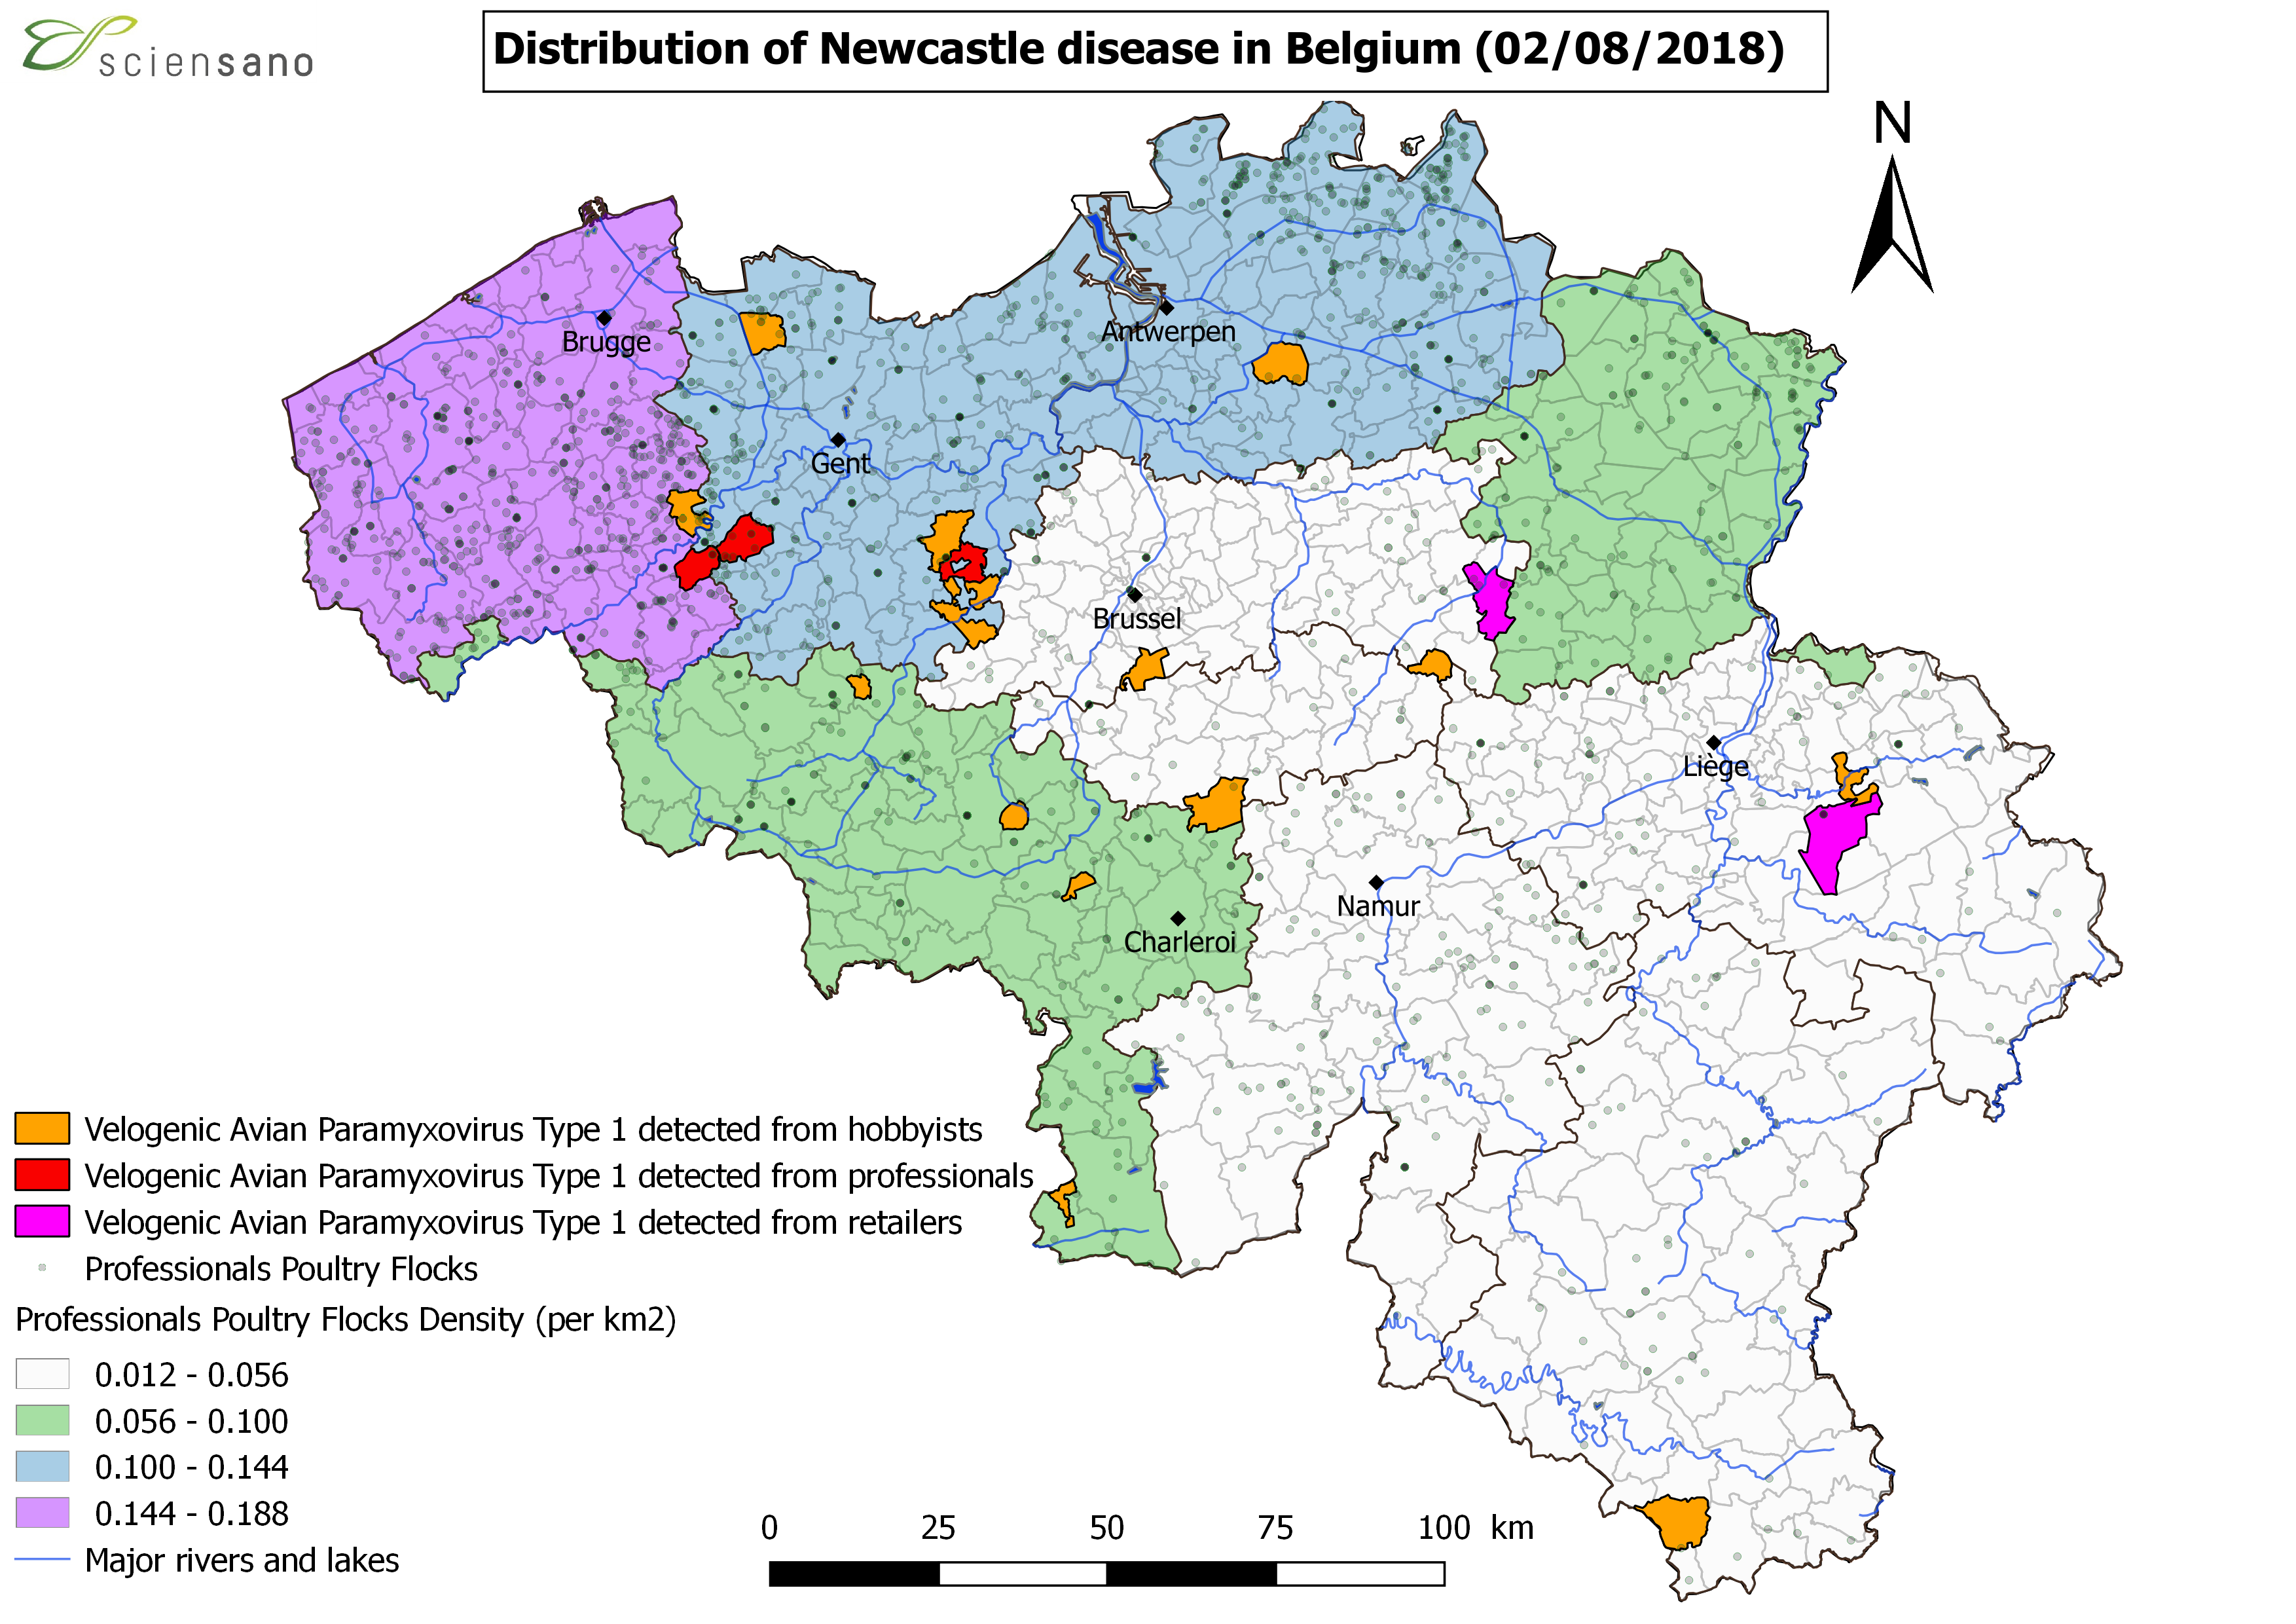 Distribution of Newcastle disease in Belgium (20/07/2018)